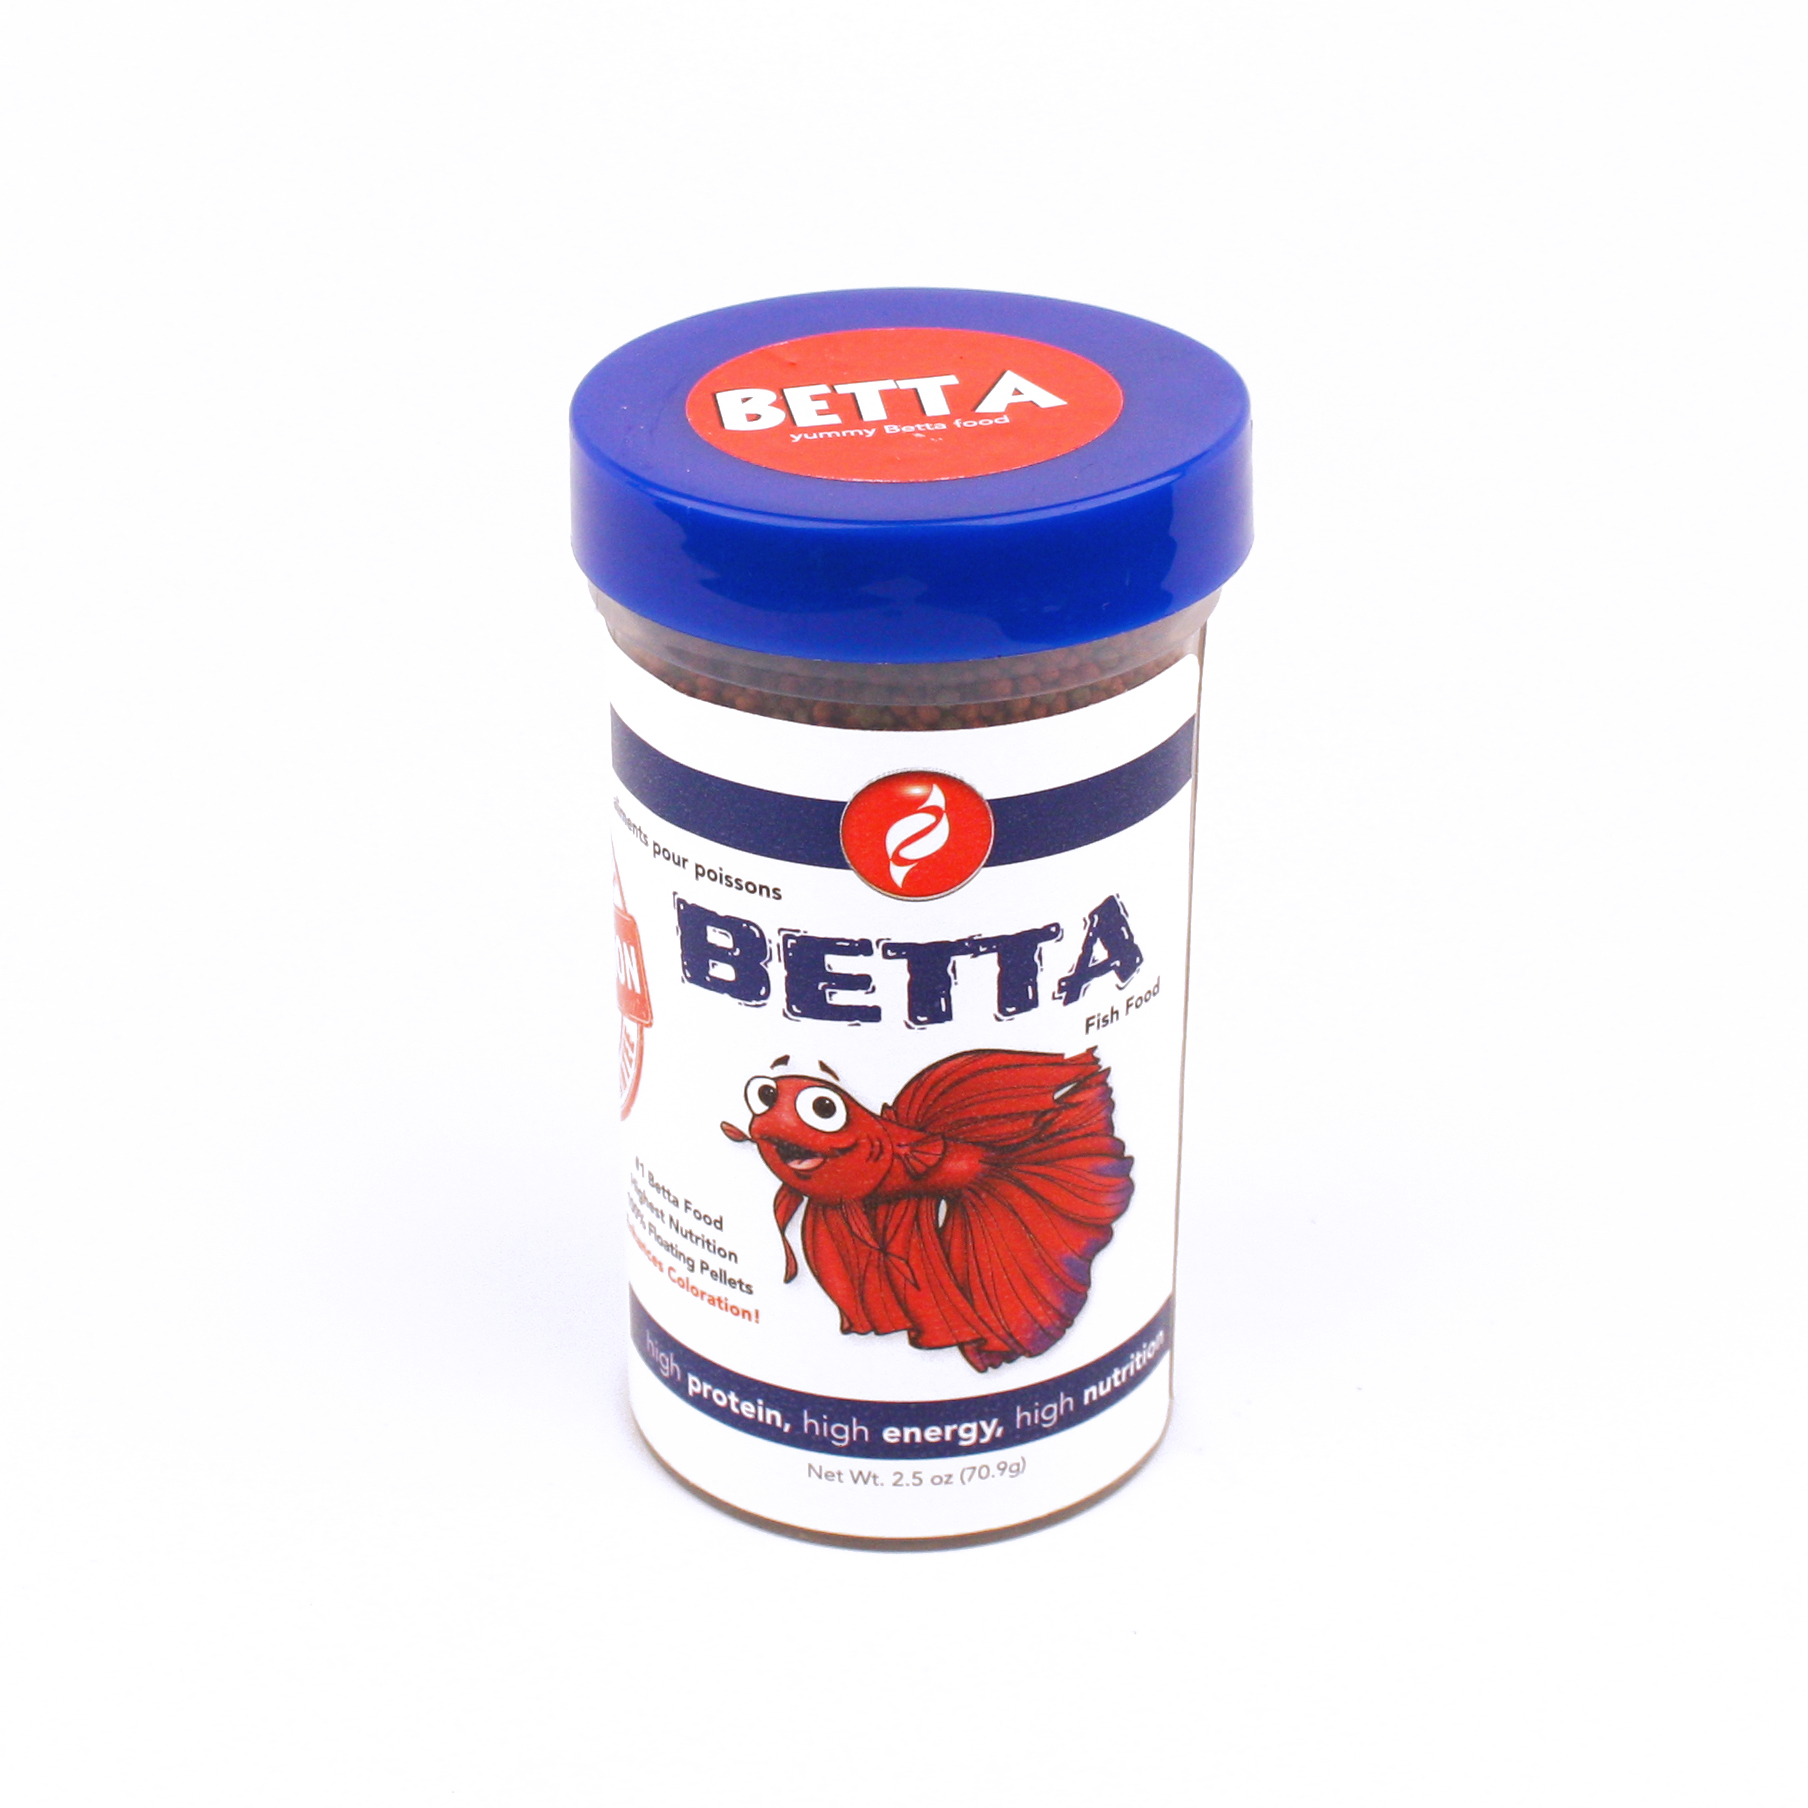 Hbh betta bites 1mm floating pisces pros for Beta fish food